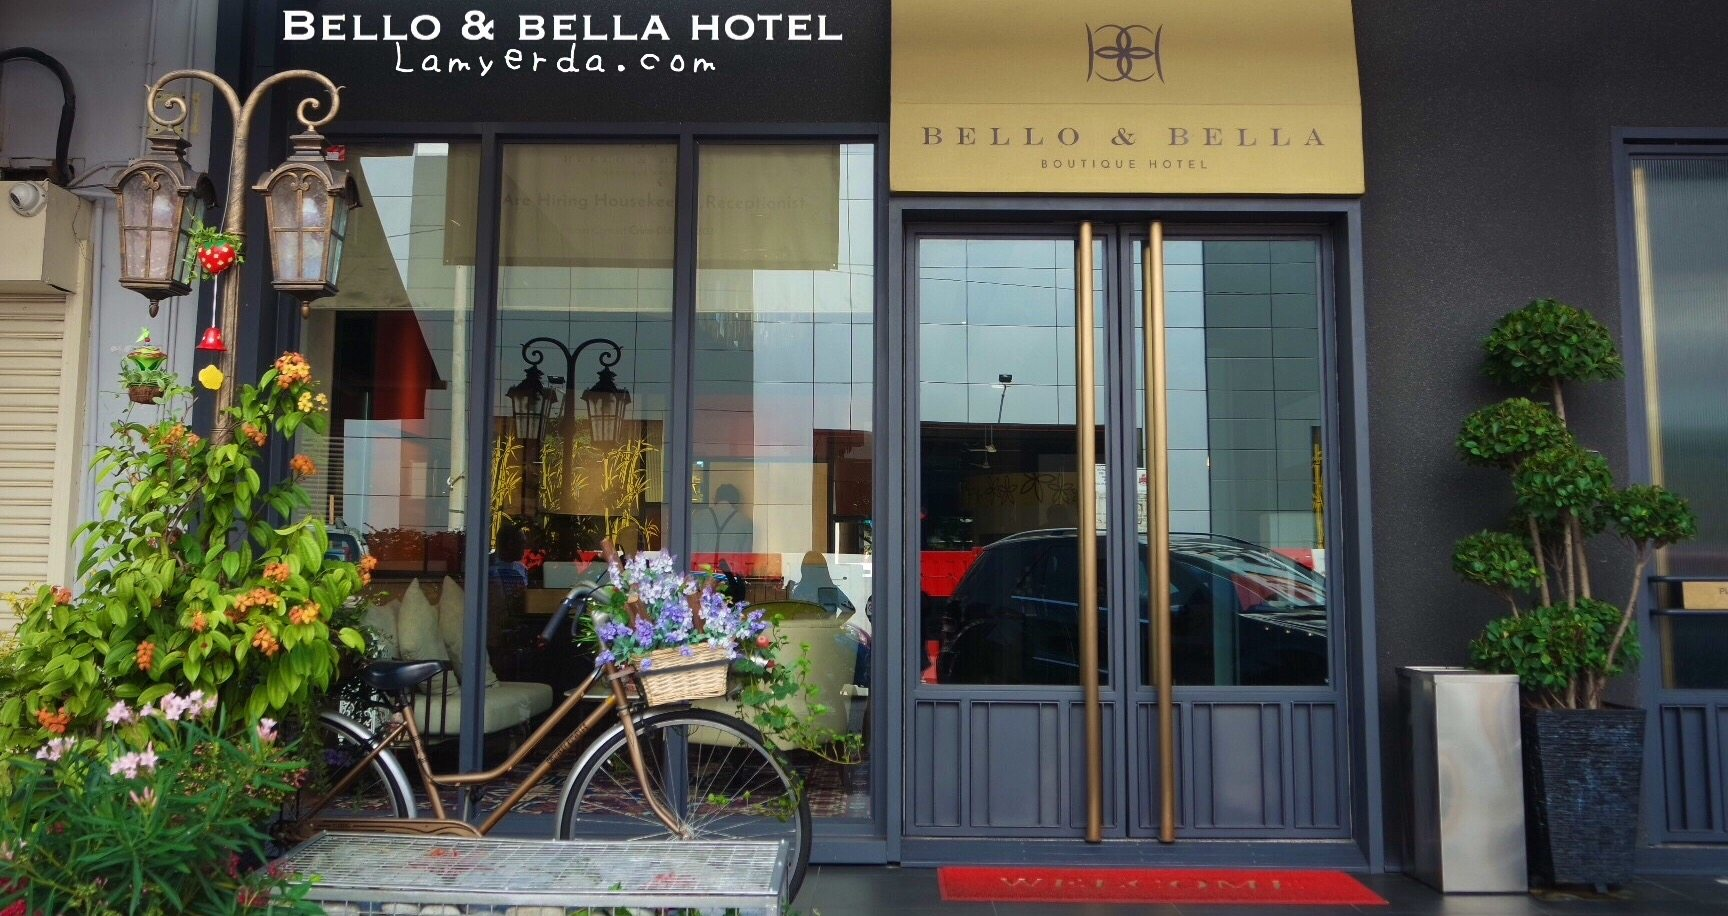 Bello bella boutique hotel a brand new hotel in cheras for Best boutique hotel brands